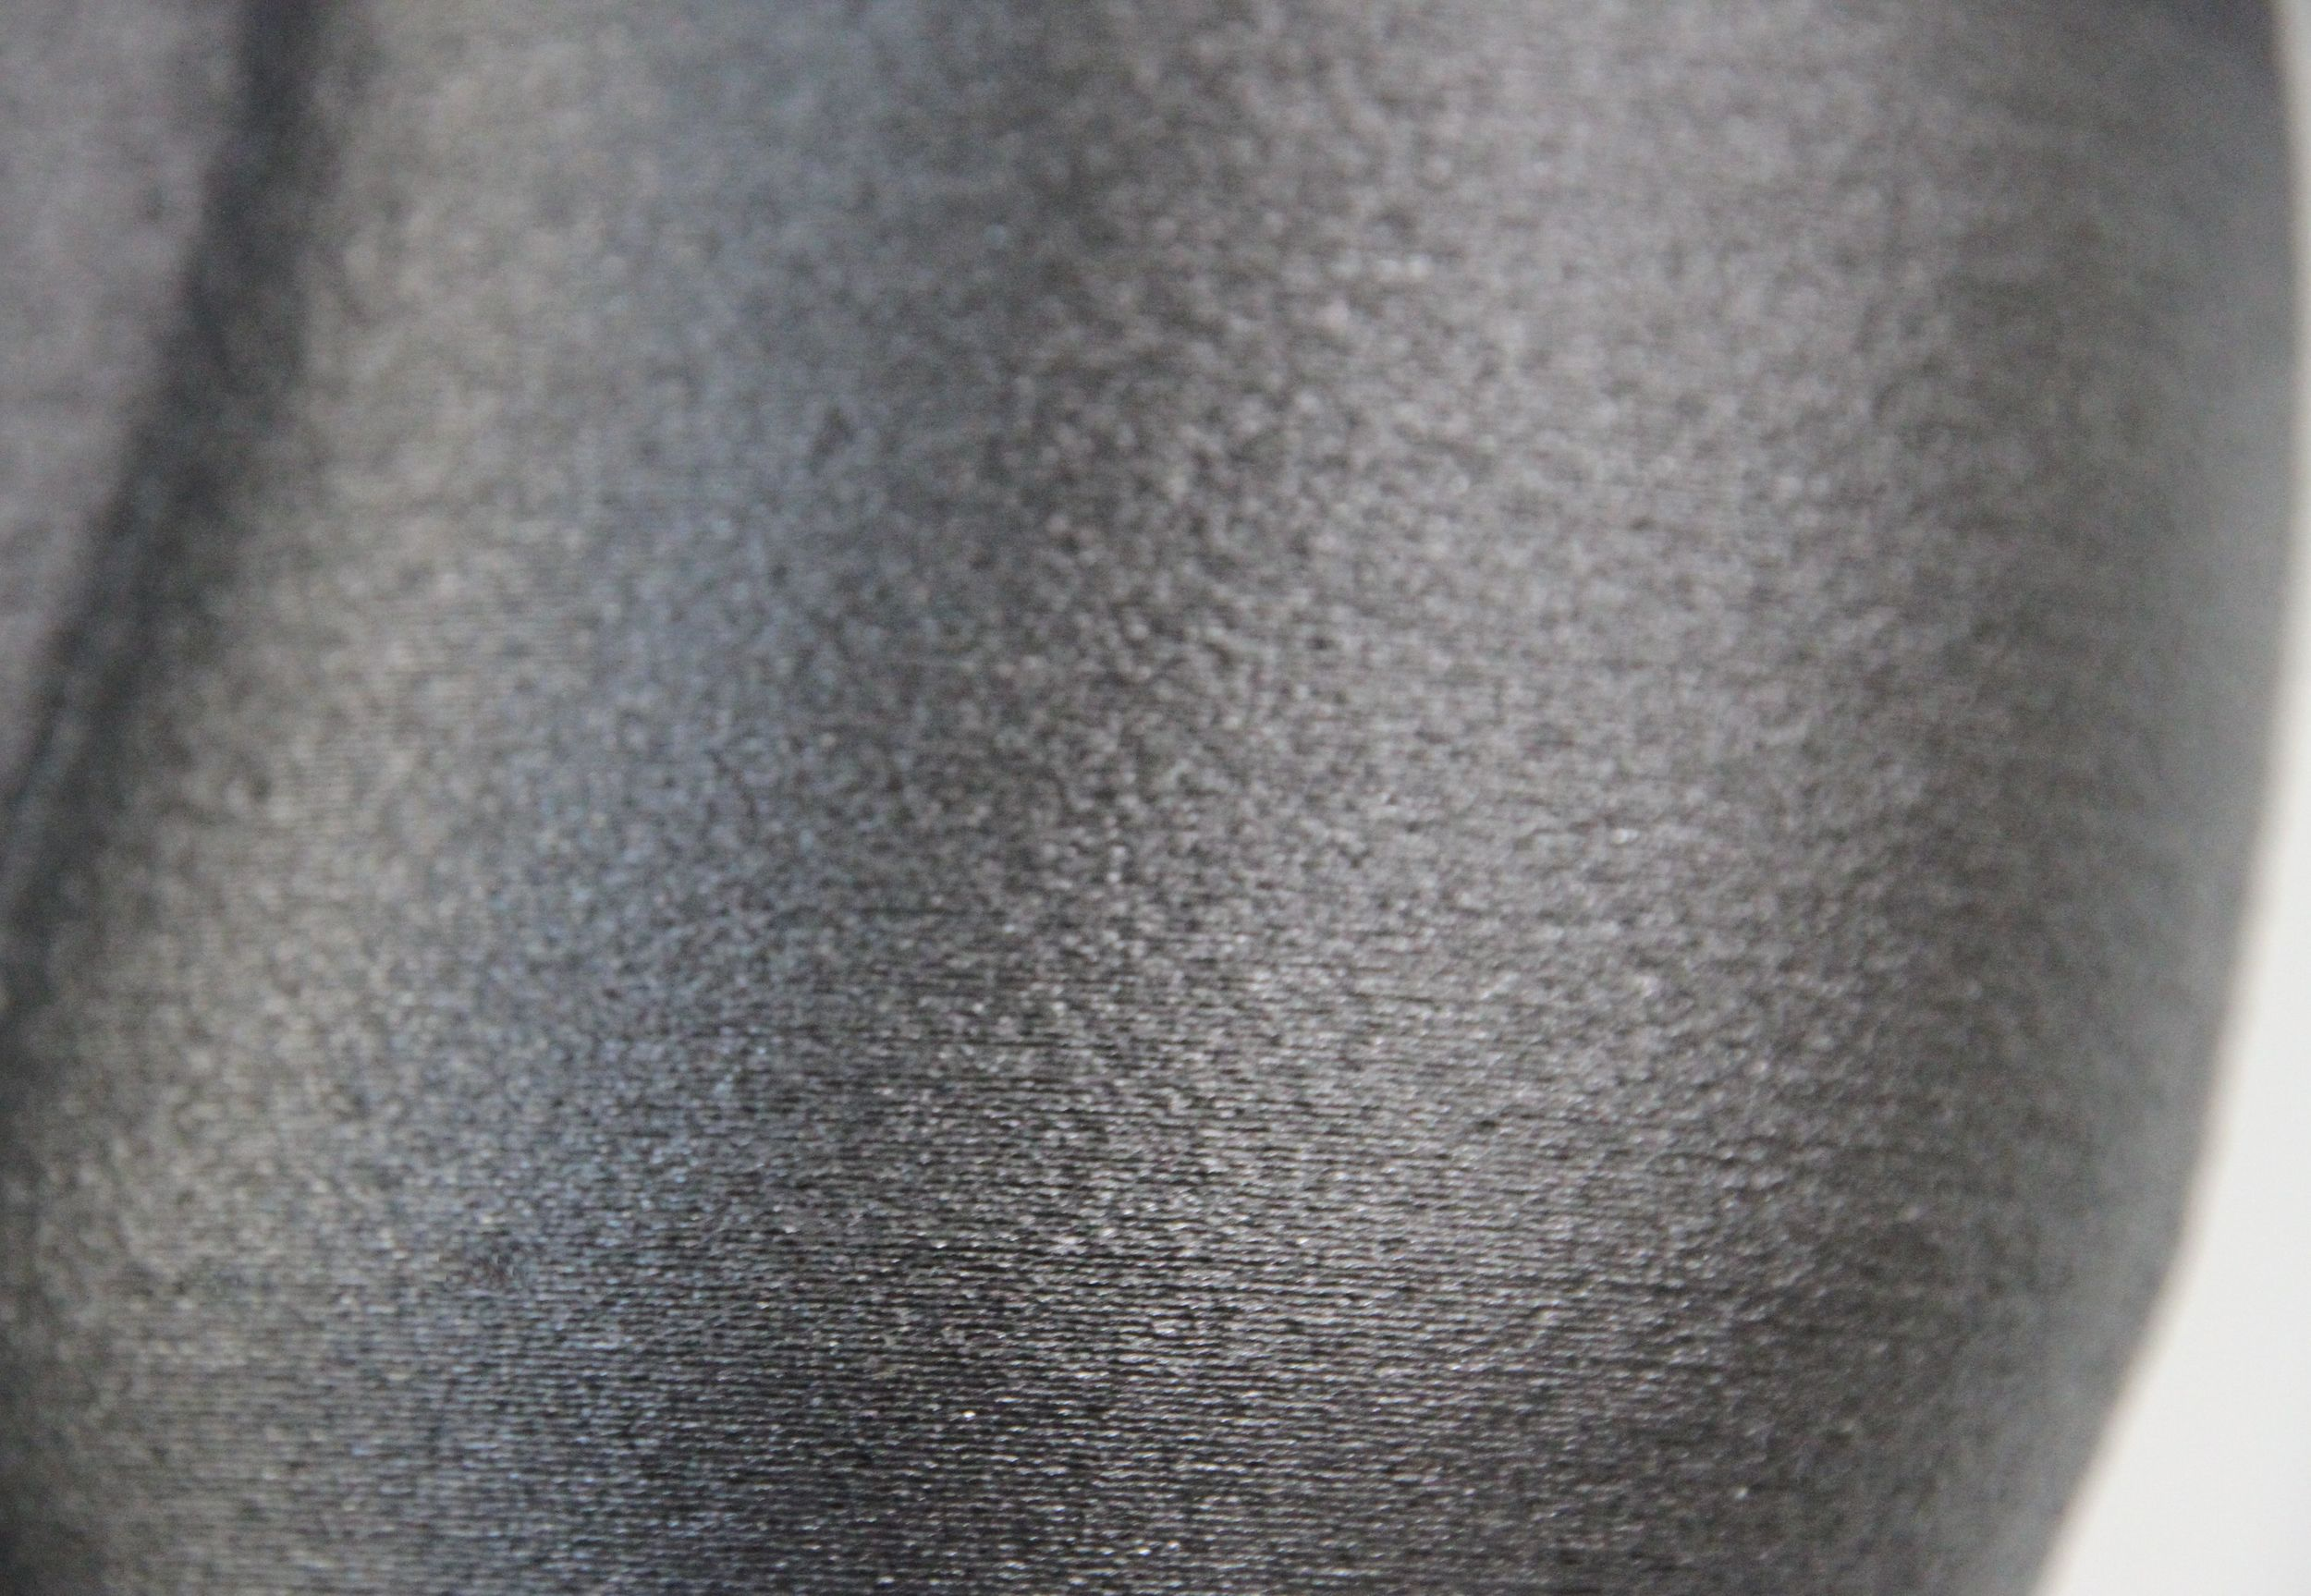 Carbon fiber closeup.jpg